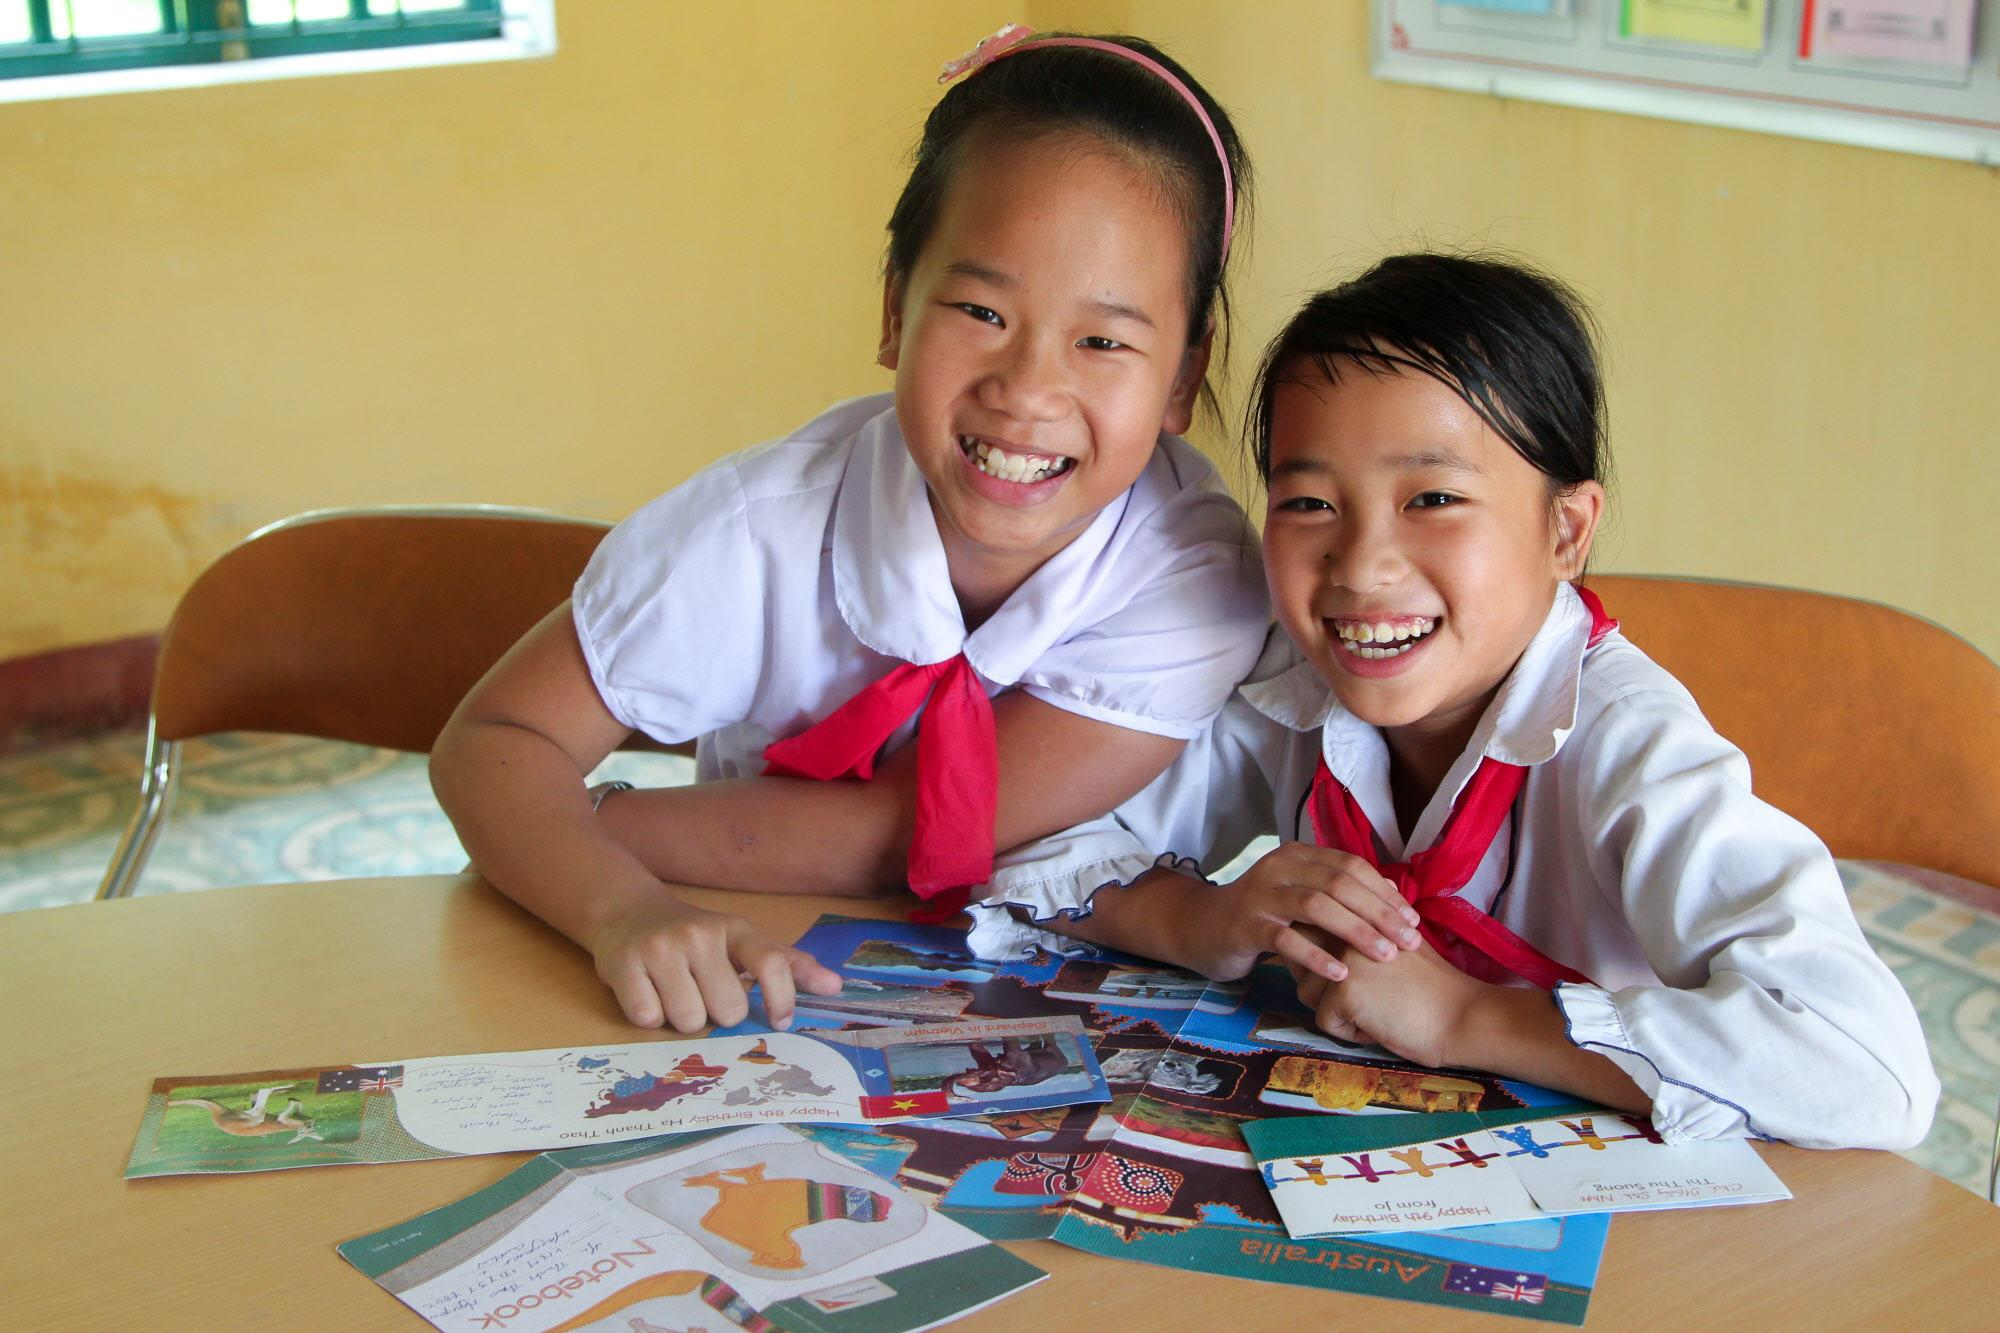 two sponsored girls smile, displaying cards they got from their sponsors